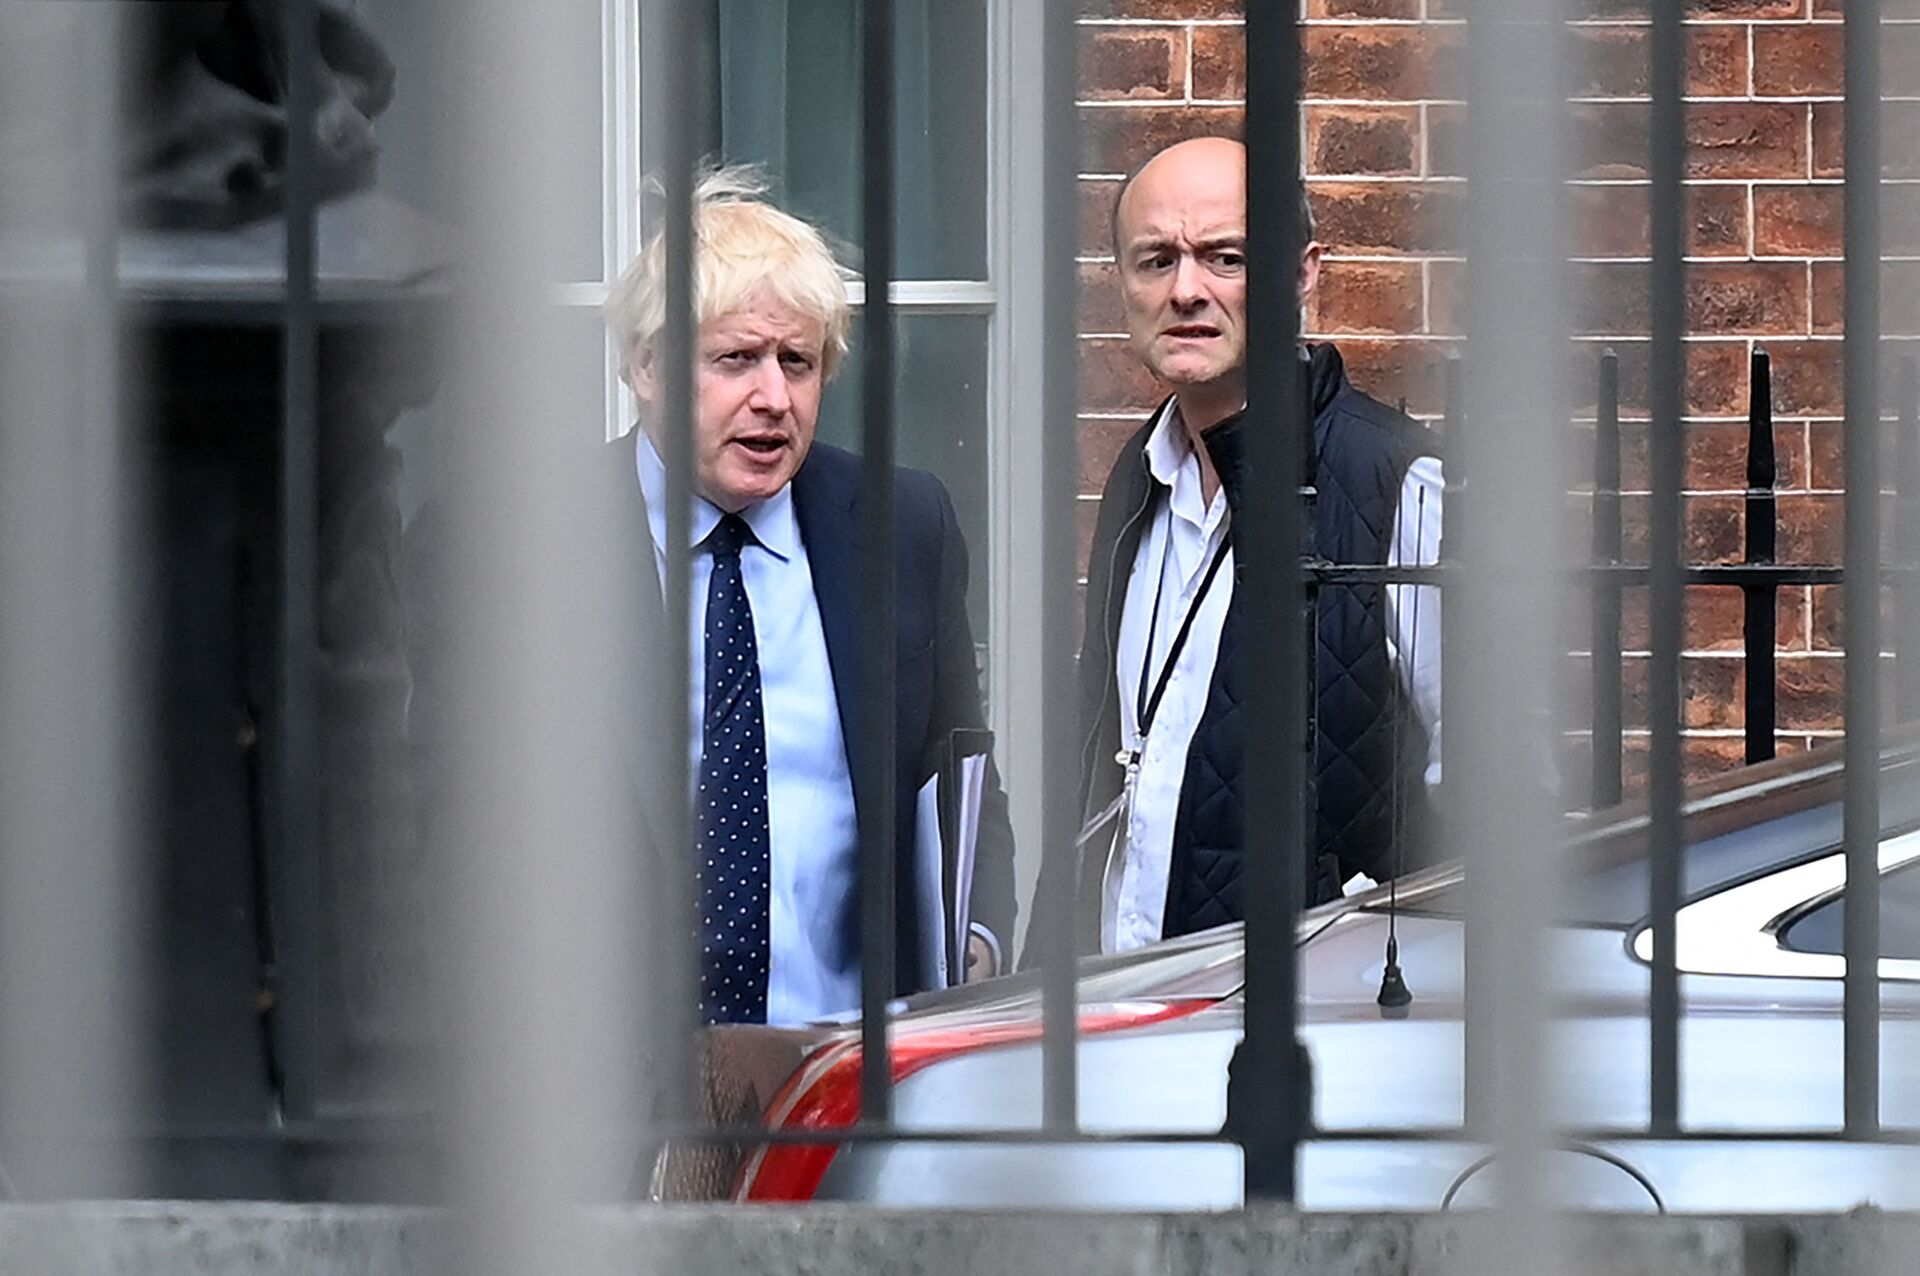 Britain's Prime Minister Boris Johnson (L) and his special advisor Dominic Cummings leave from the rear of Downing Street in central London on September 3, 2019, before heading to the Houses of Parliament - Sputnik International, 1920, 07.09.2021